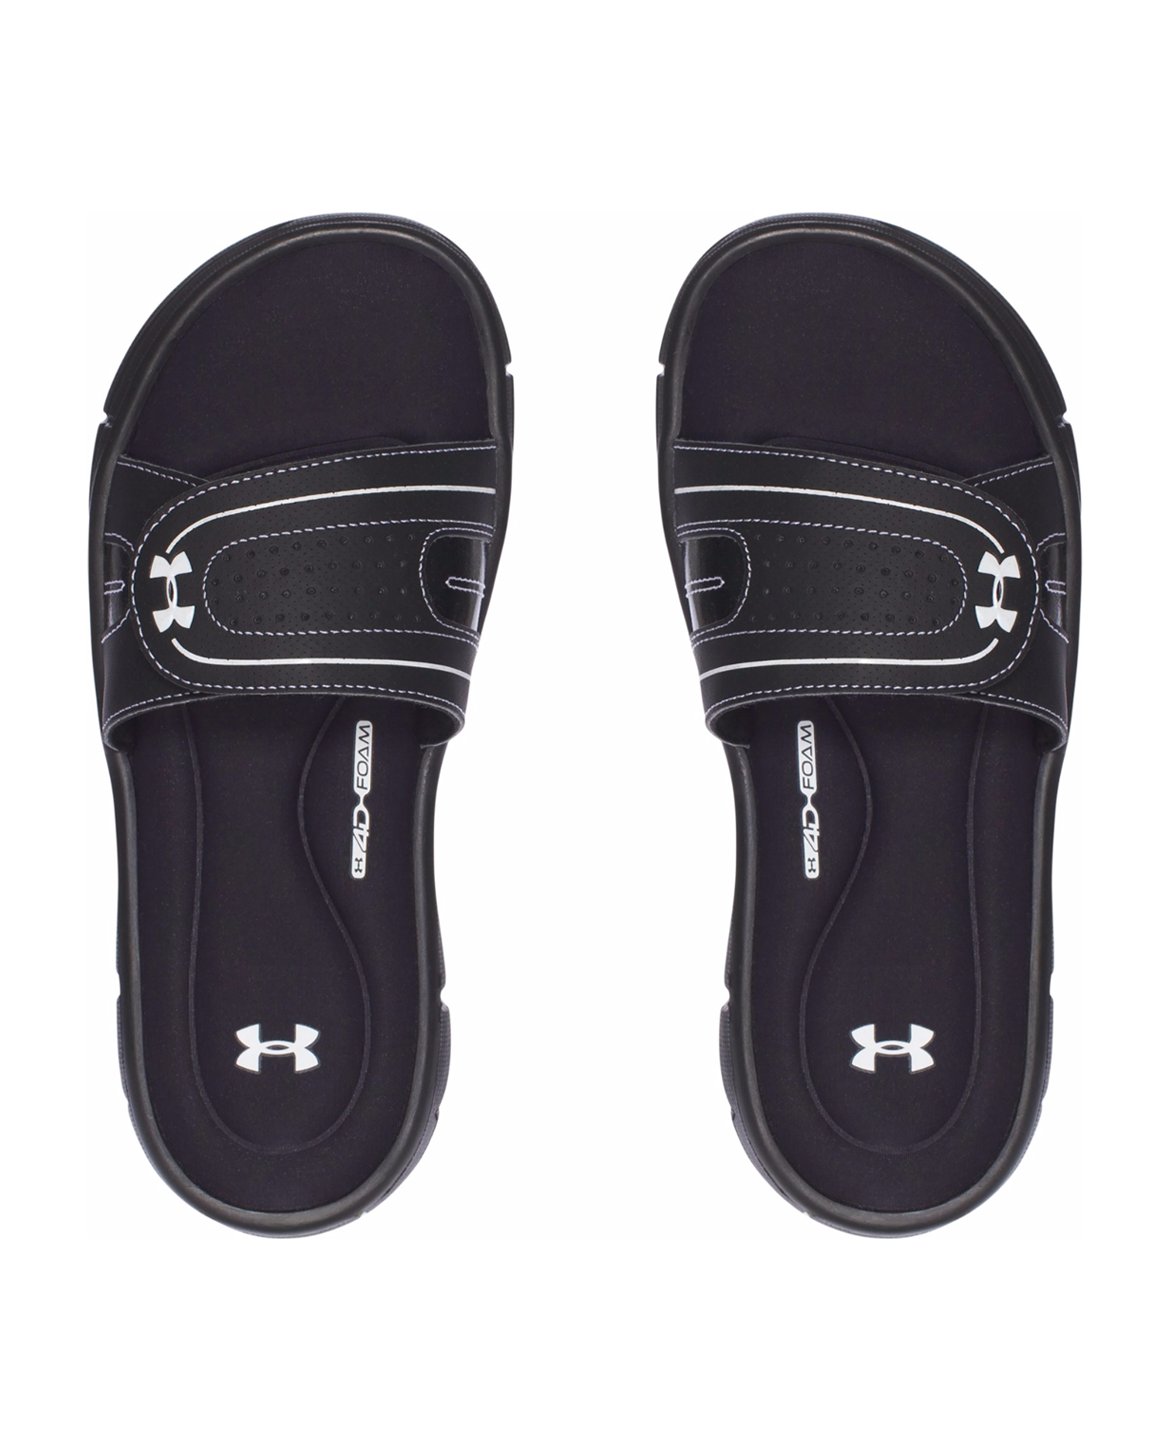 under armour ignite slides women's